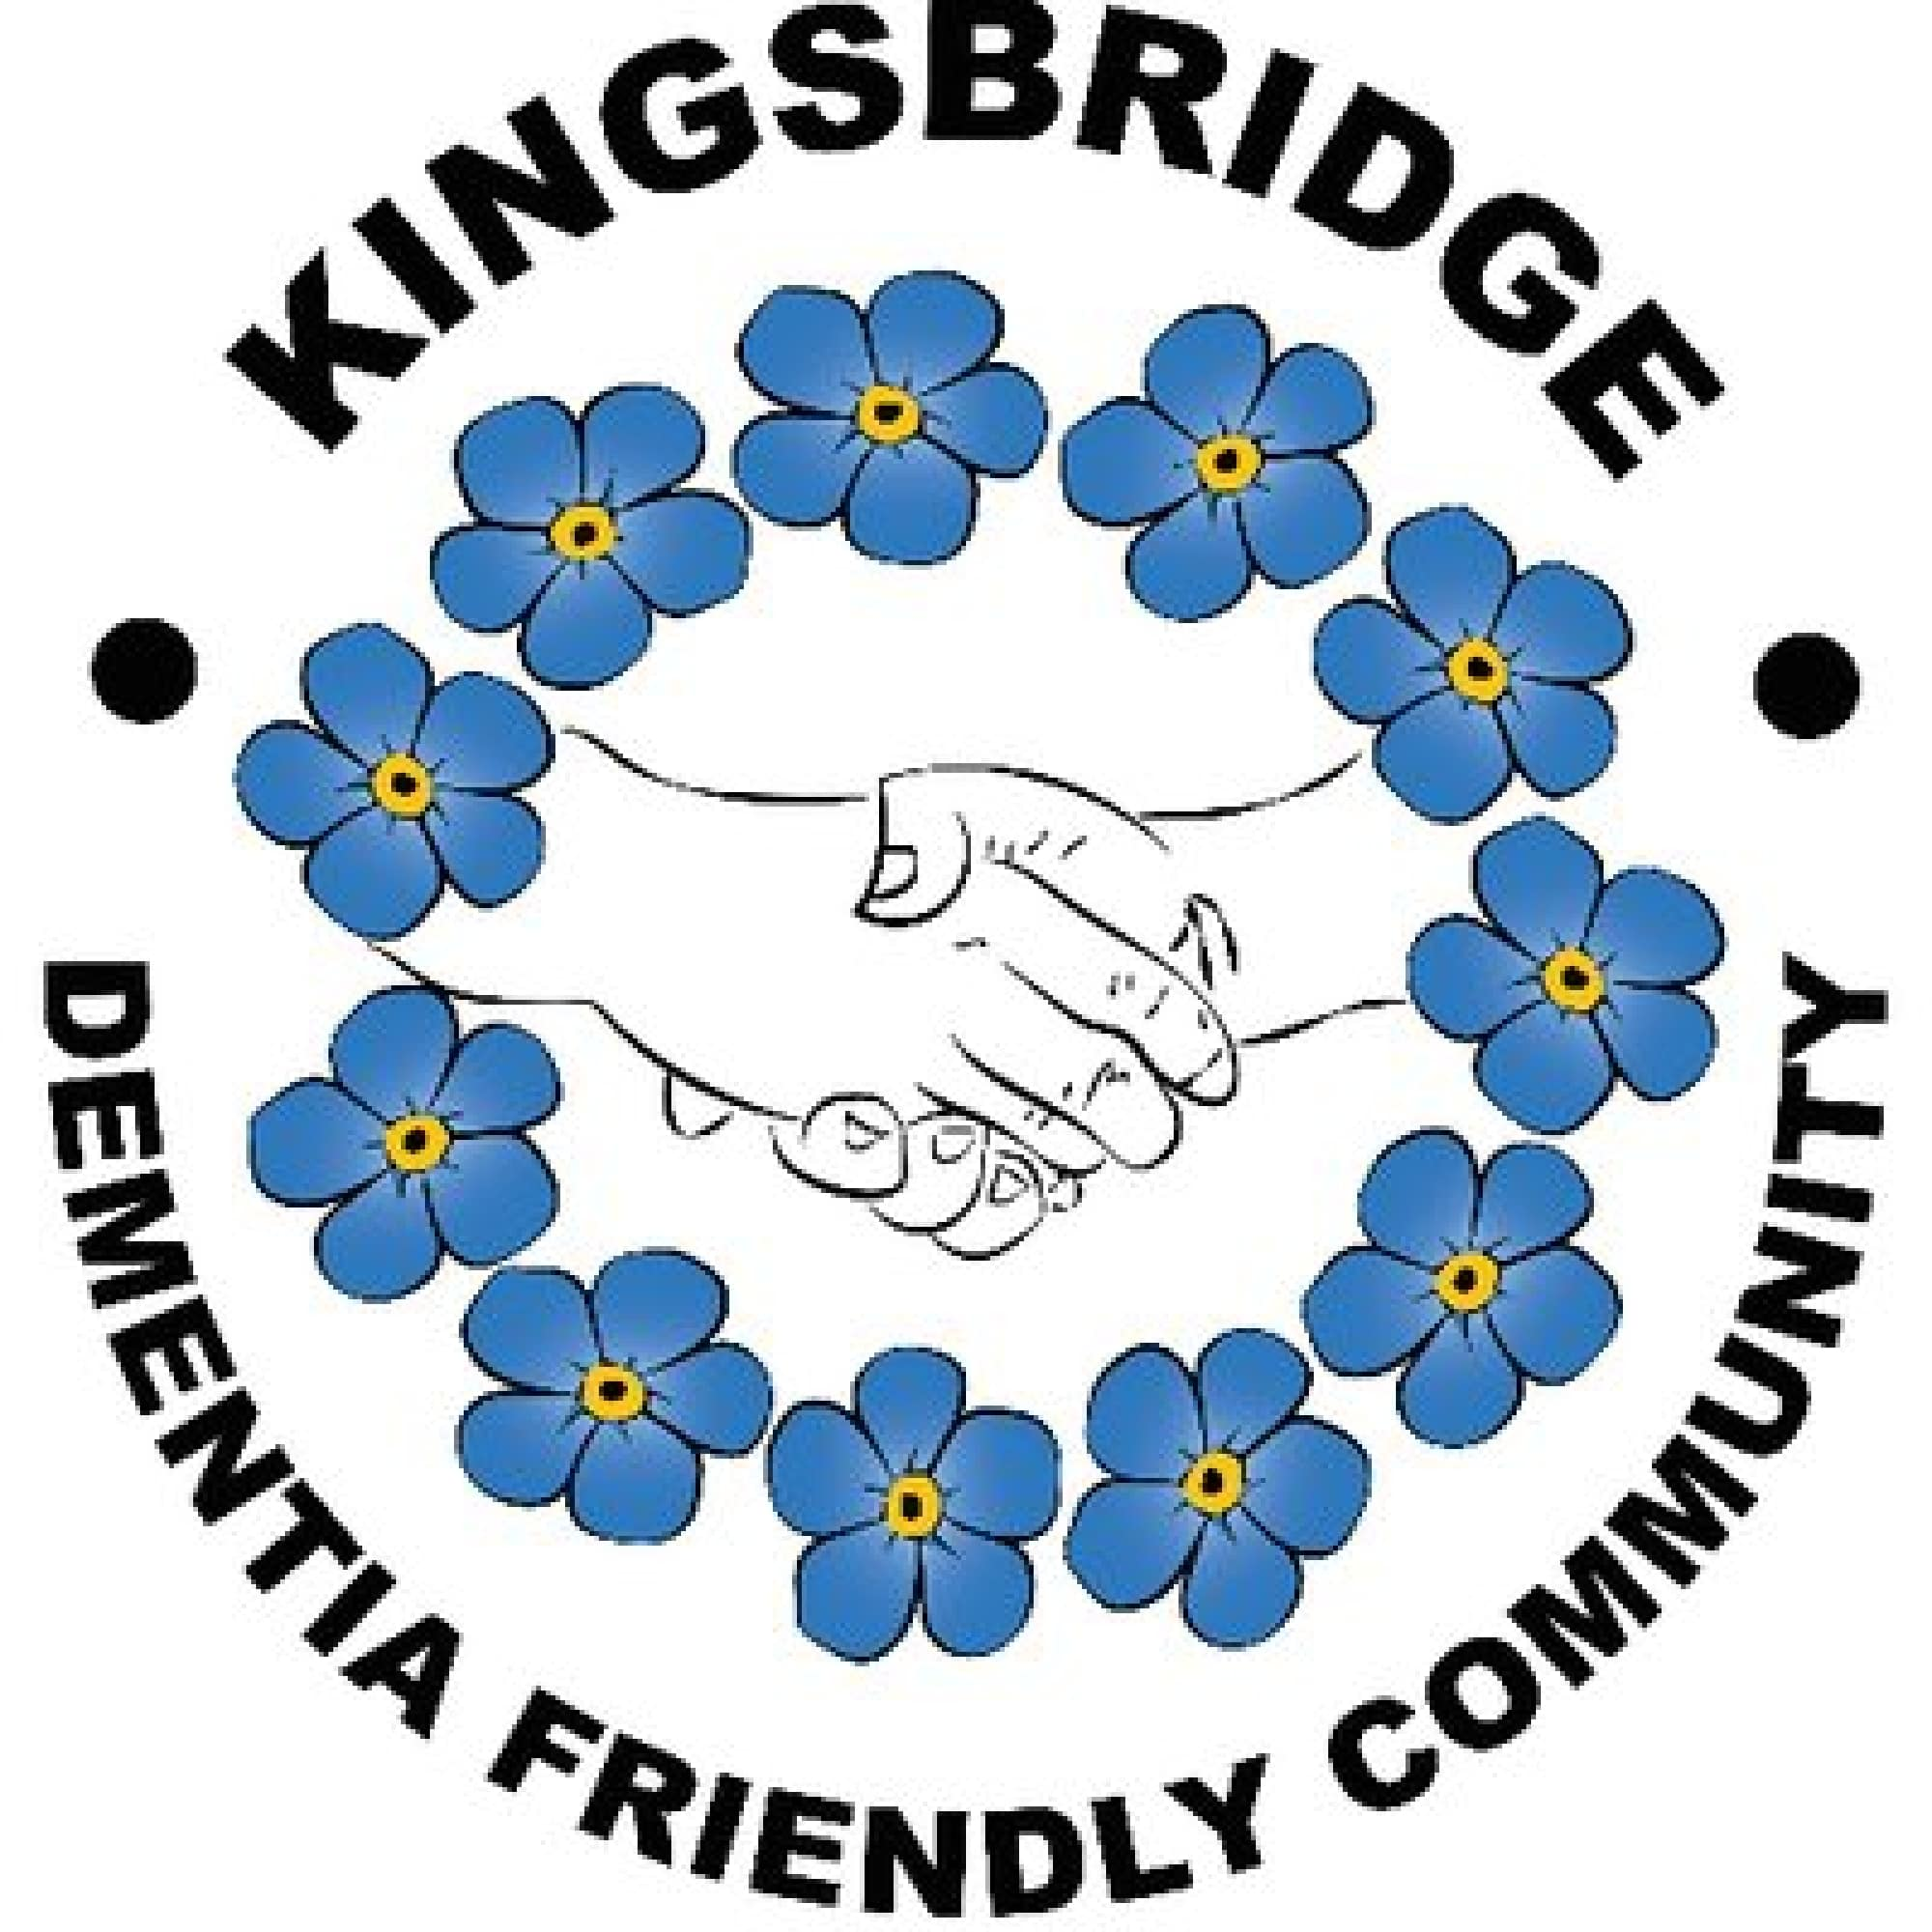 Dementia Friends: Kingsbridge Dementia Friendly Community